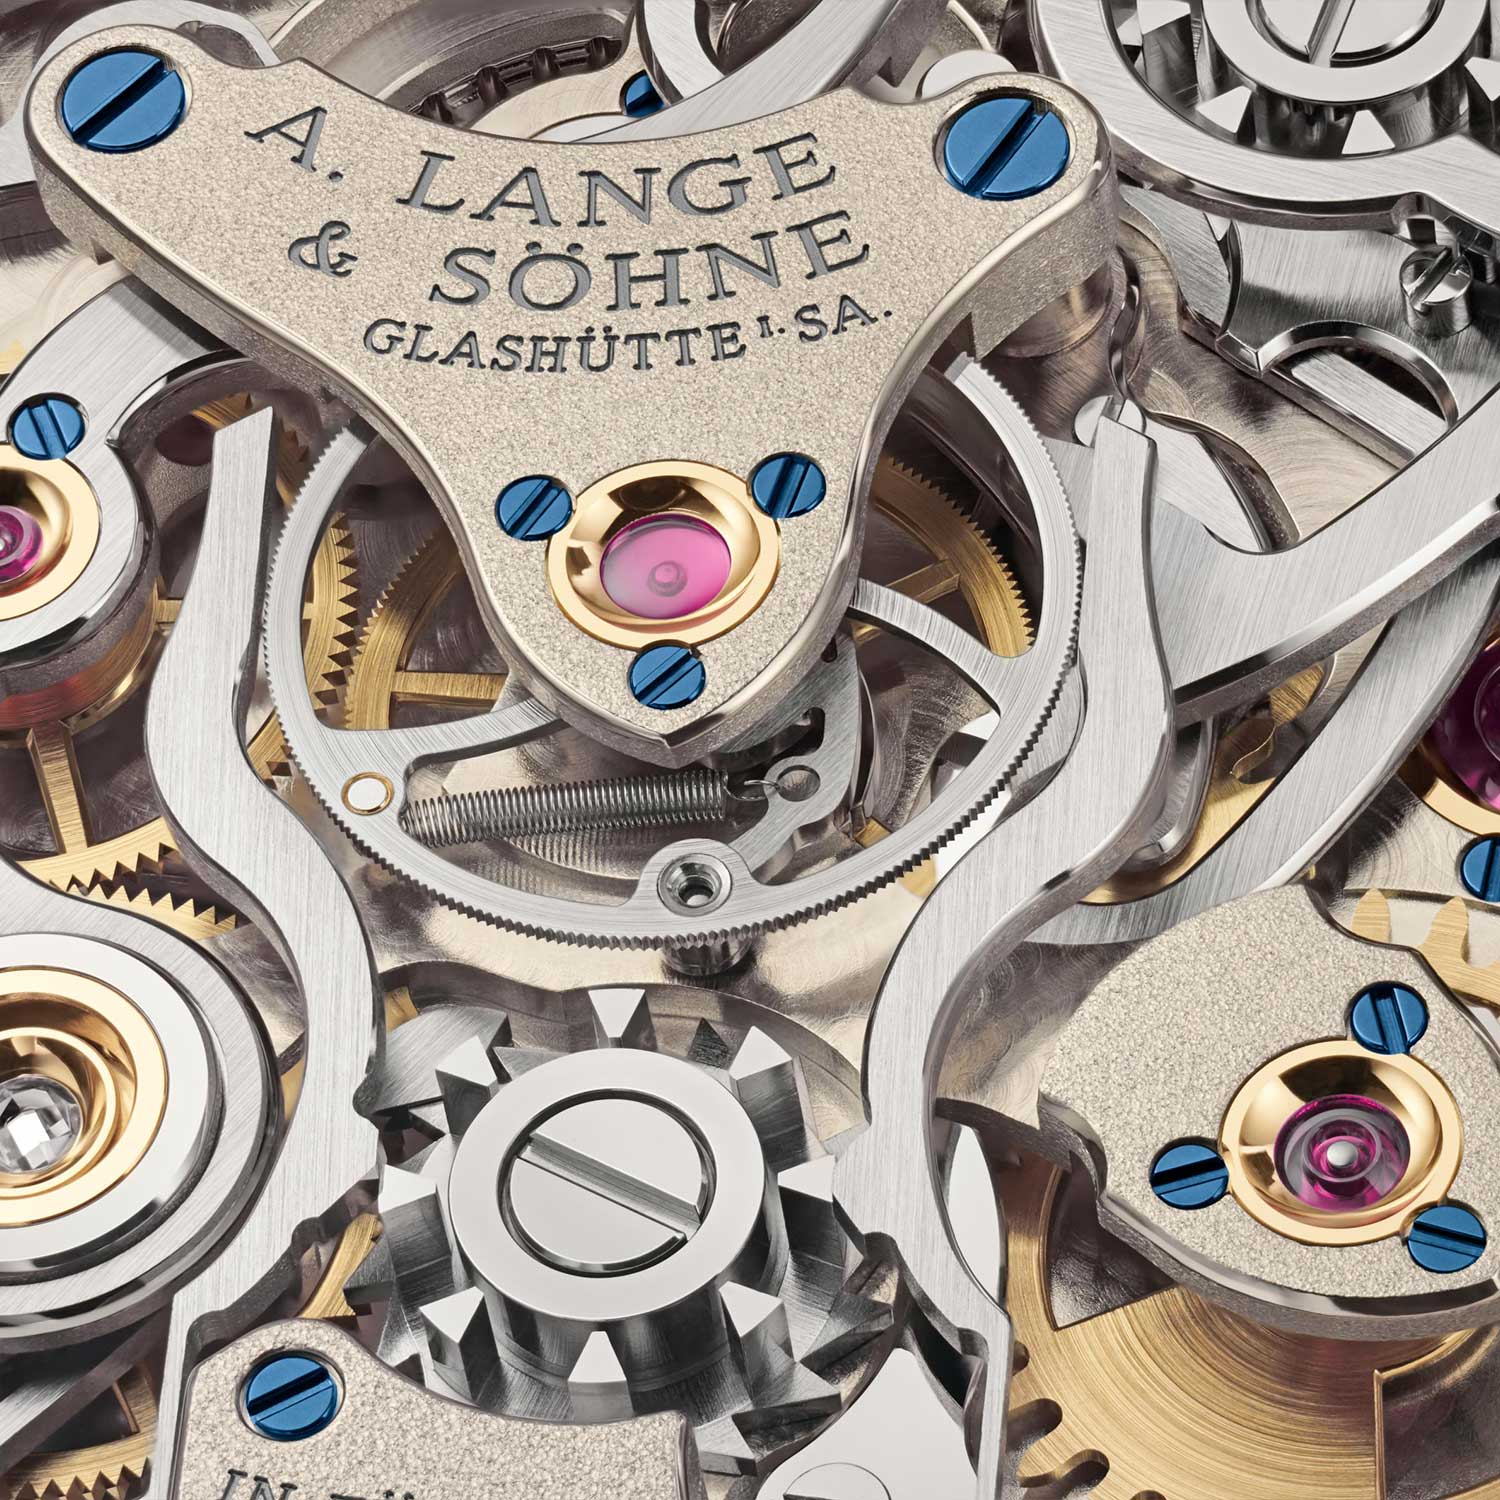 A closer look at the split seconds clamp on the Lange manufacture calibre L133.1